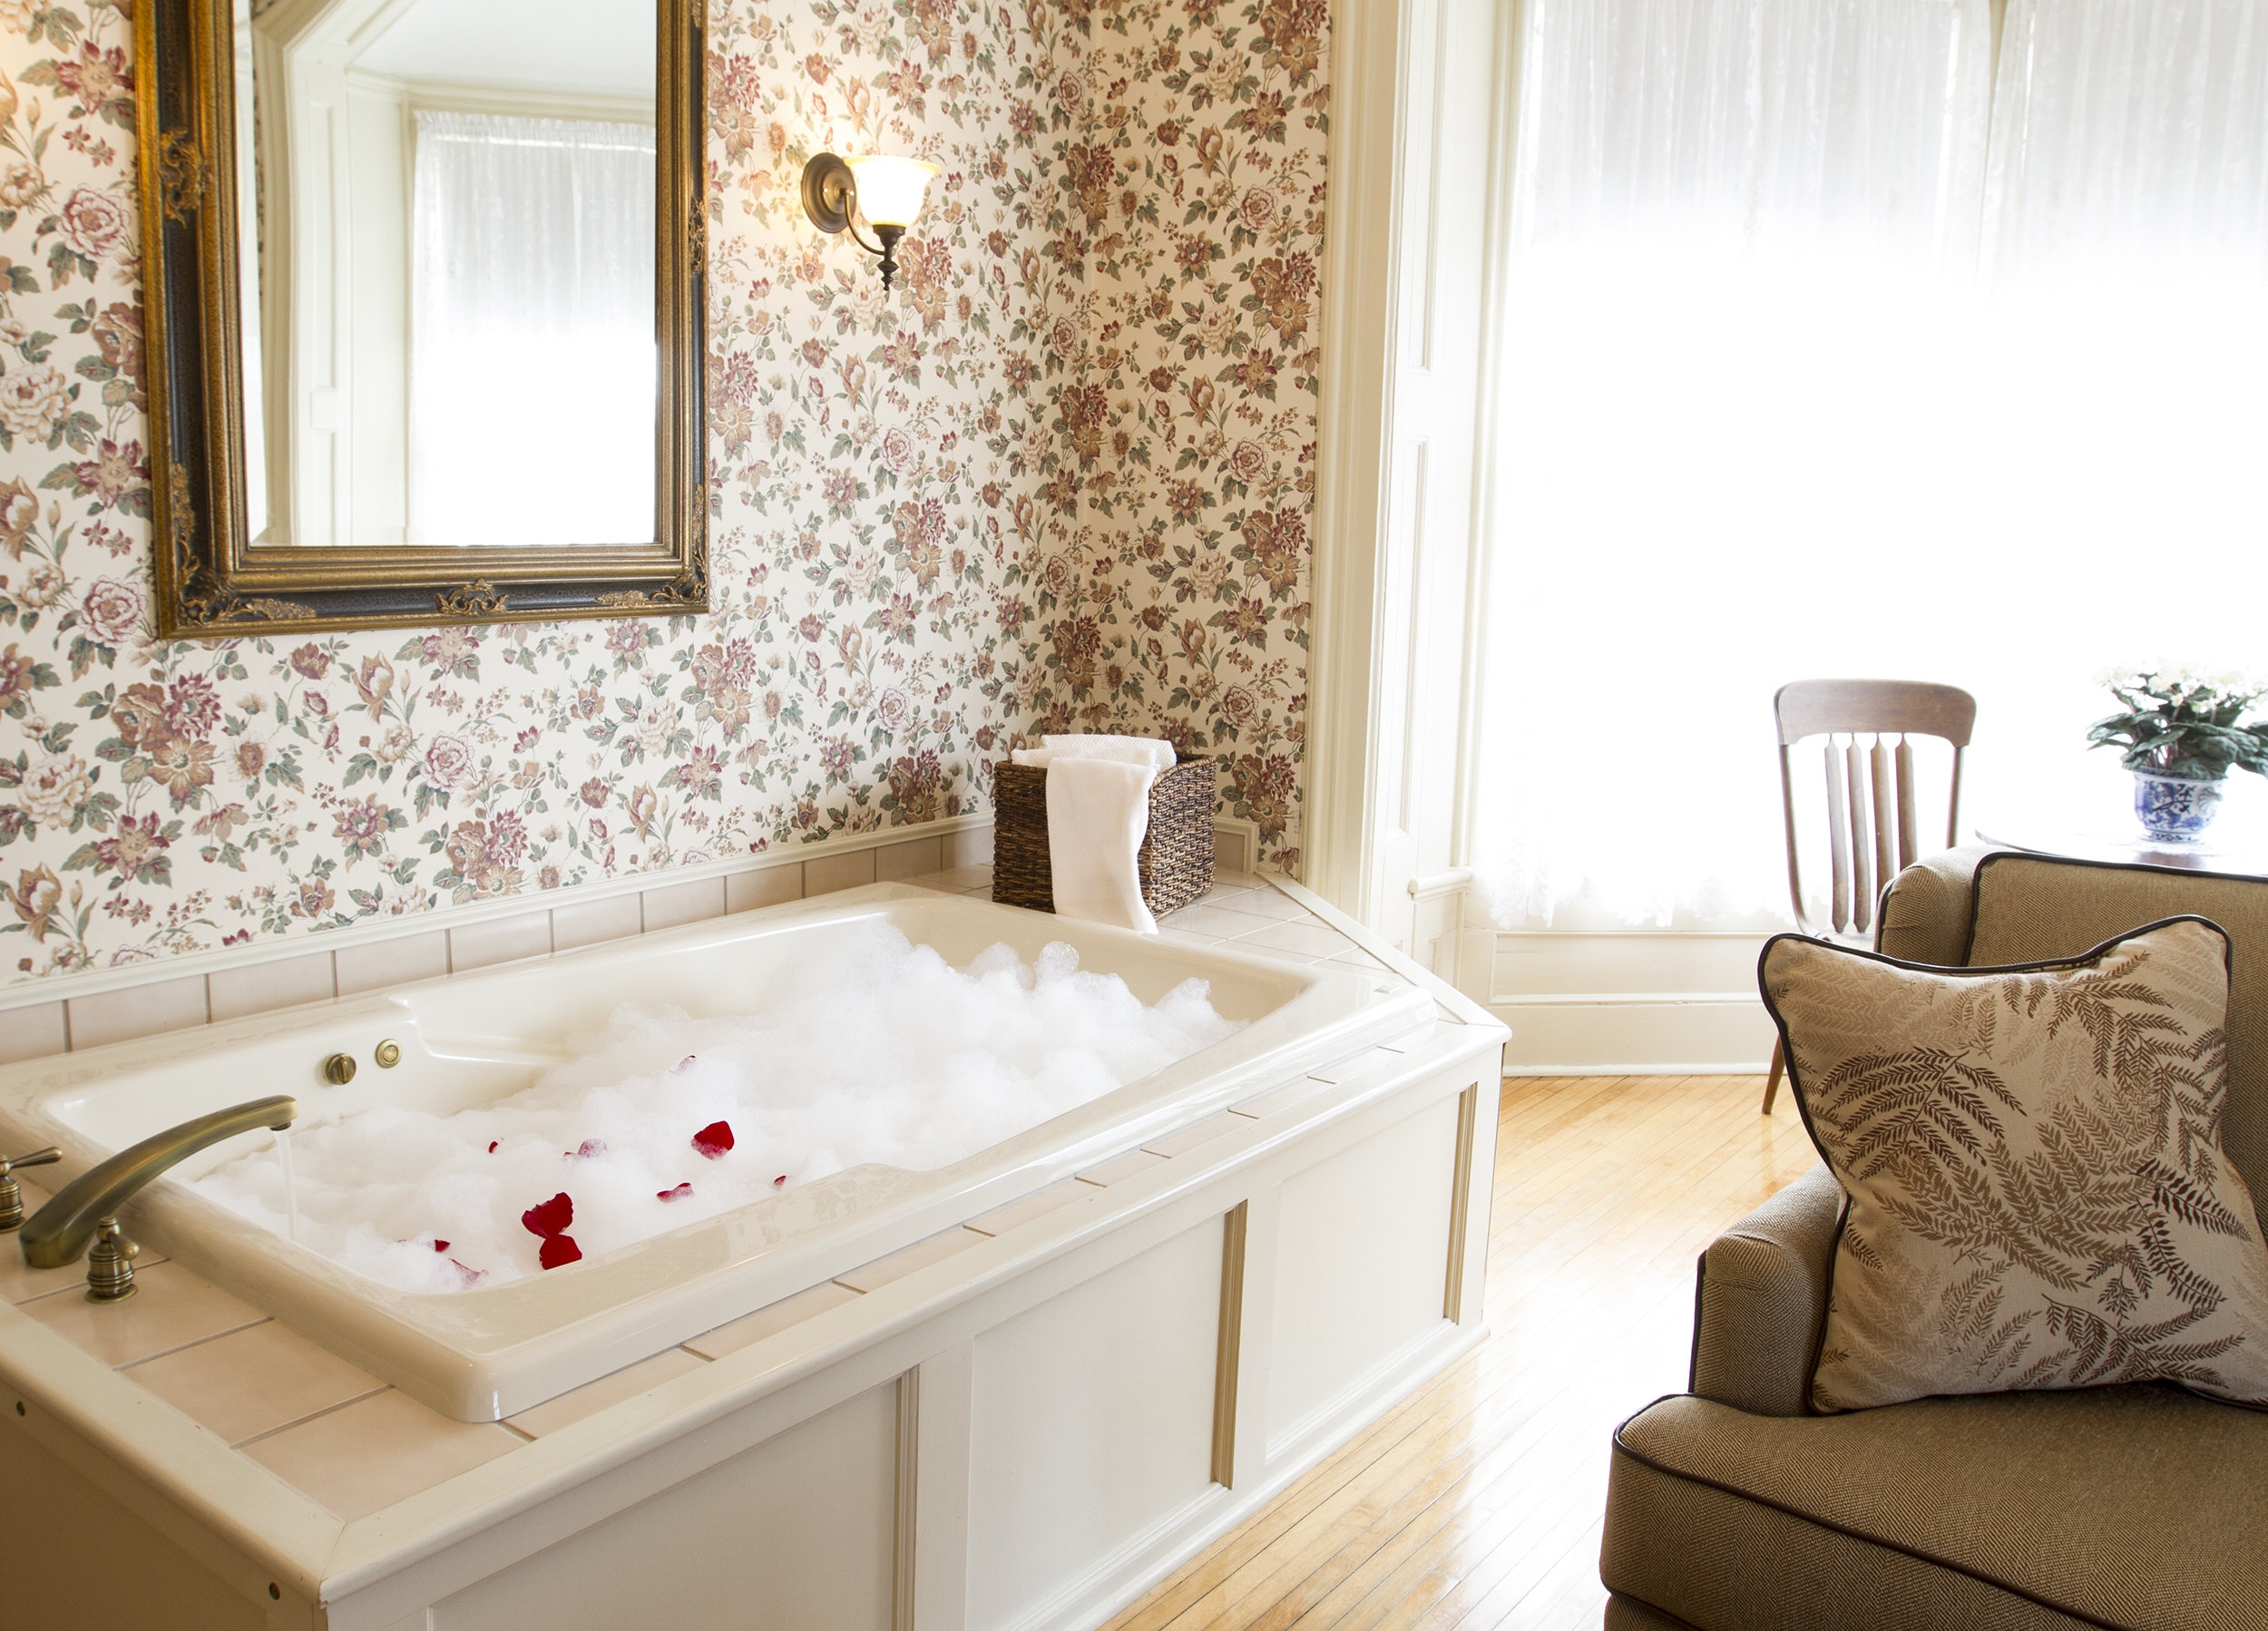 Whirlpool spas and tubs